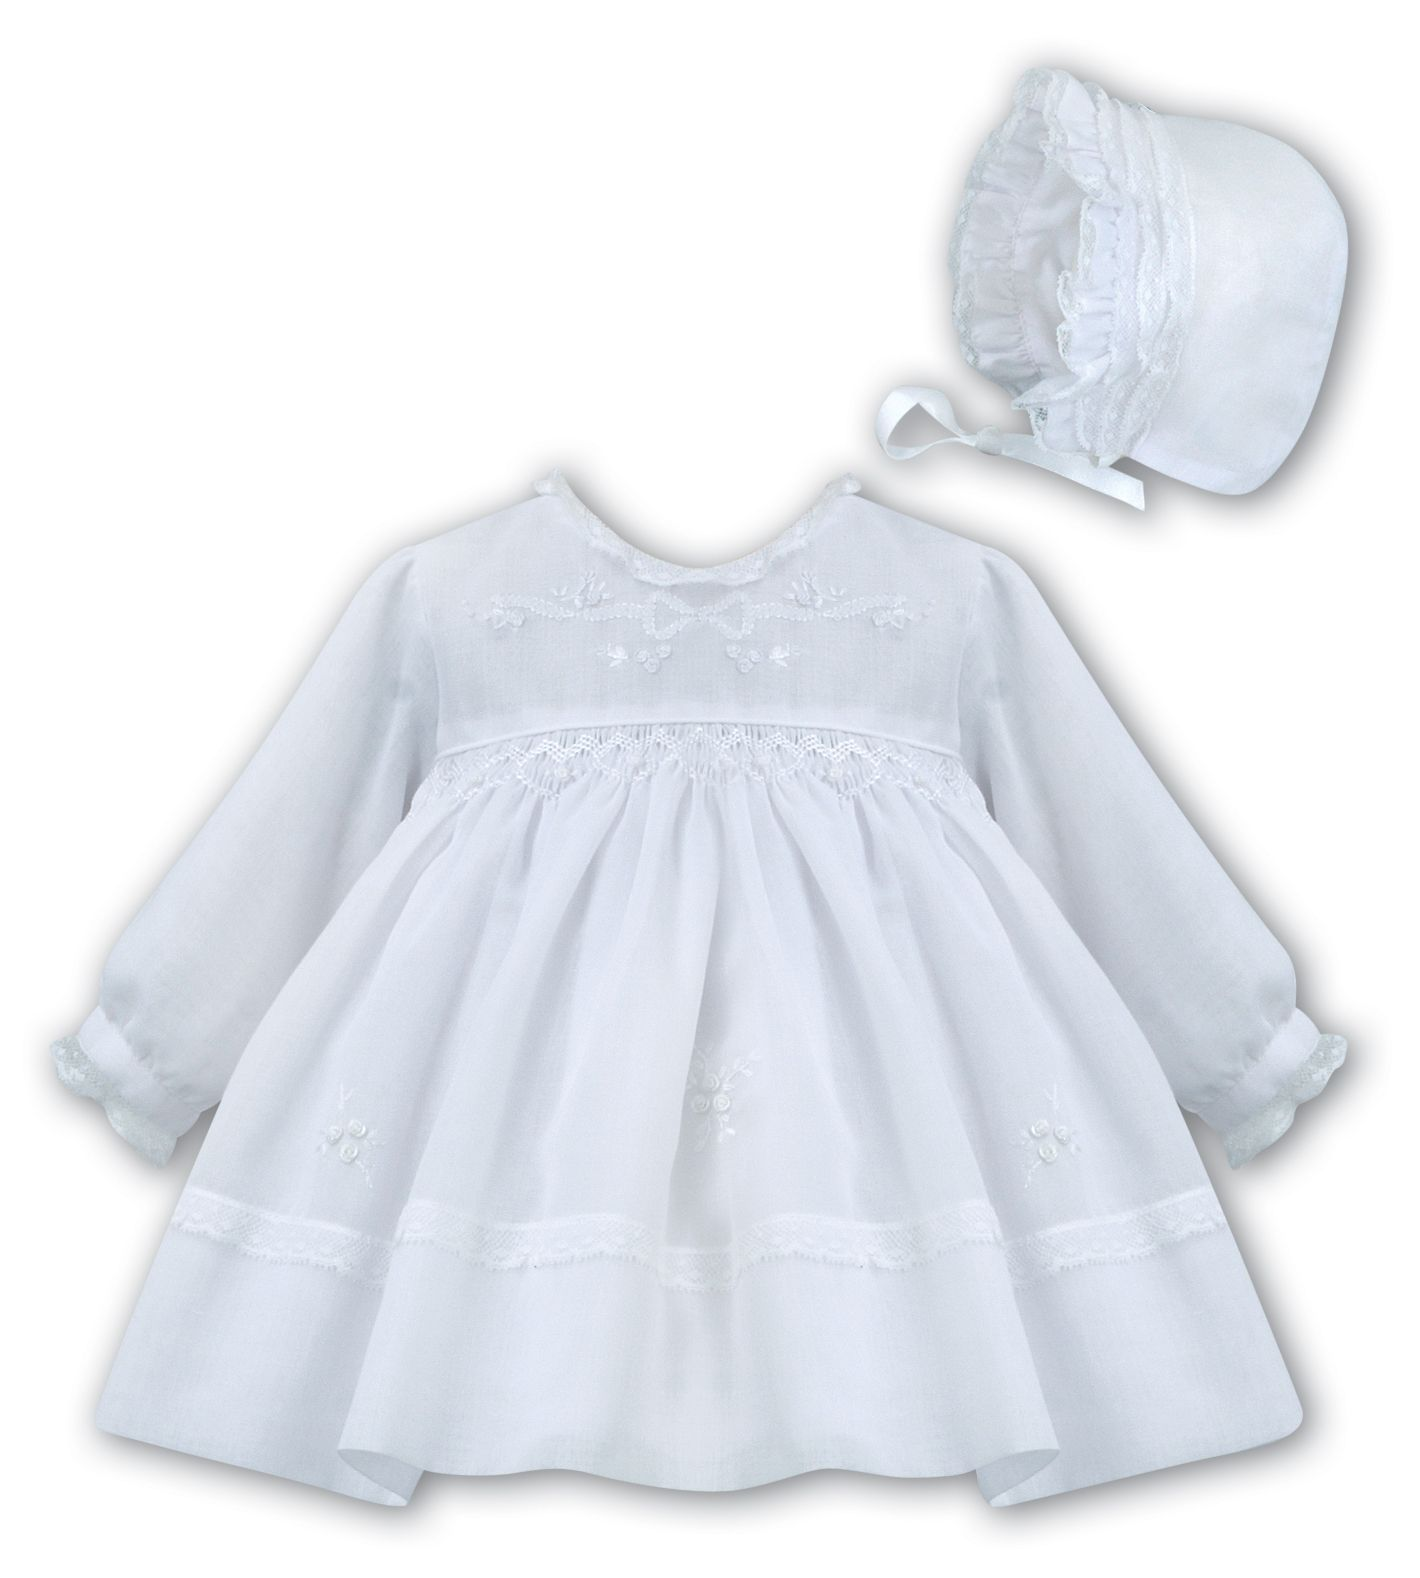 1de9cc839 White long sleeved smocked Christening dress 001199 Sarah Louise 1199